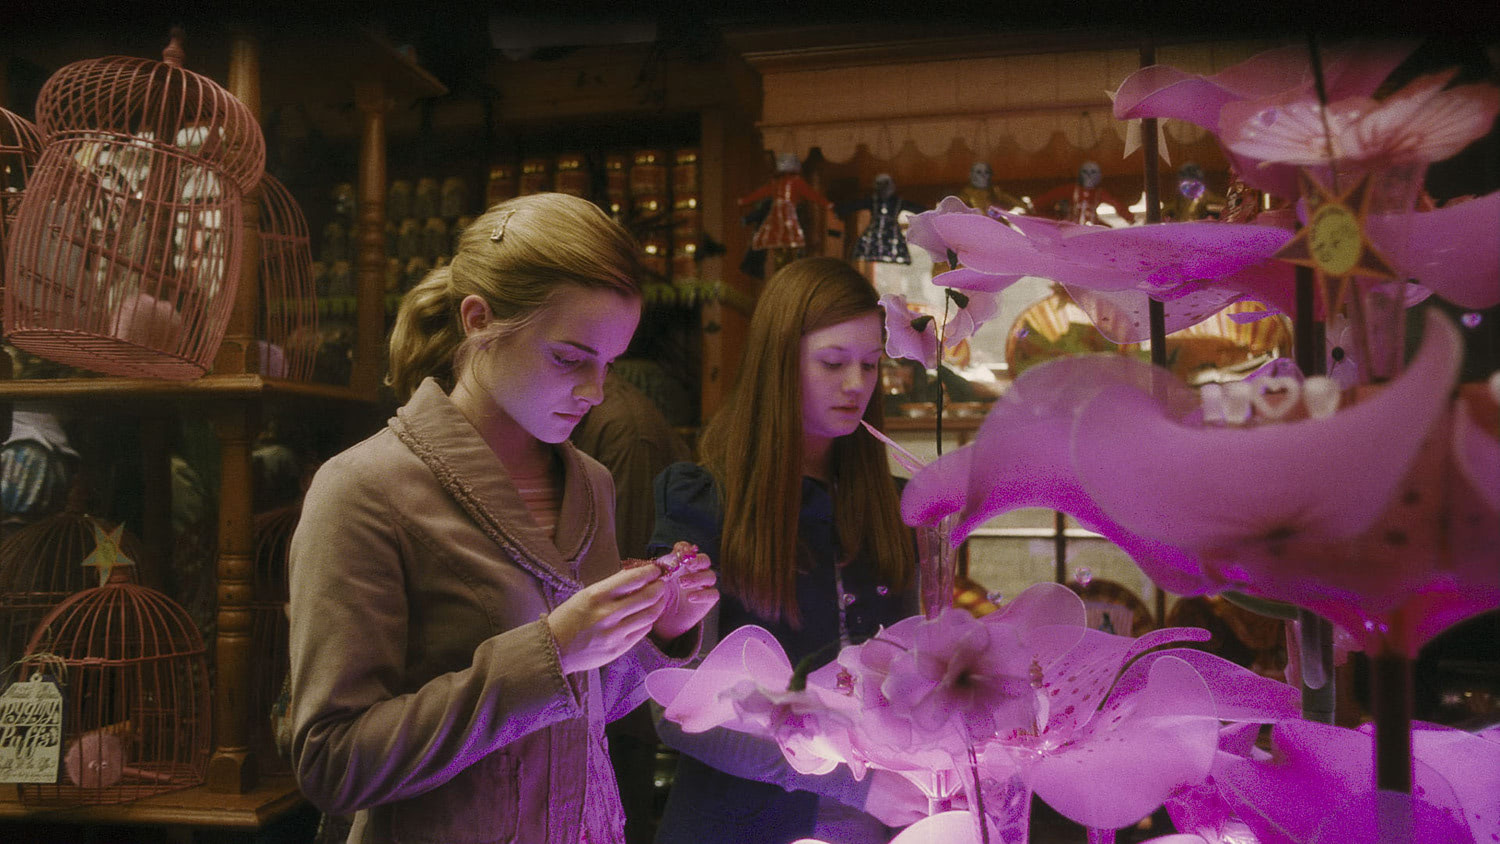 Hermione and Ginny at Weasley's Wizard Wheezes